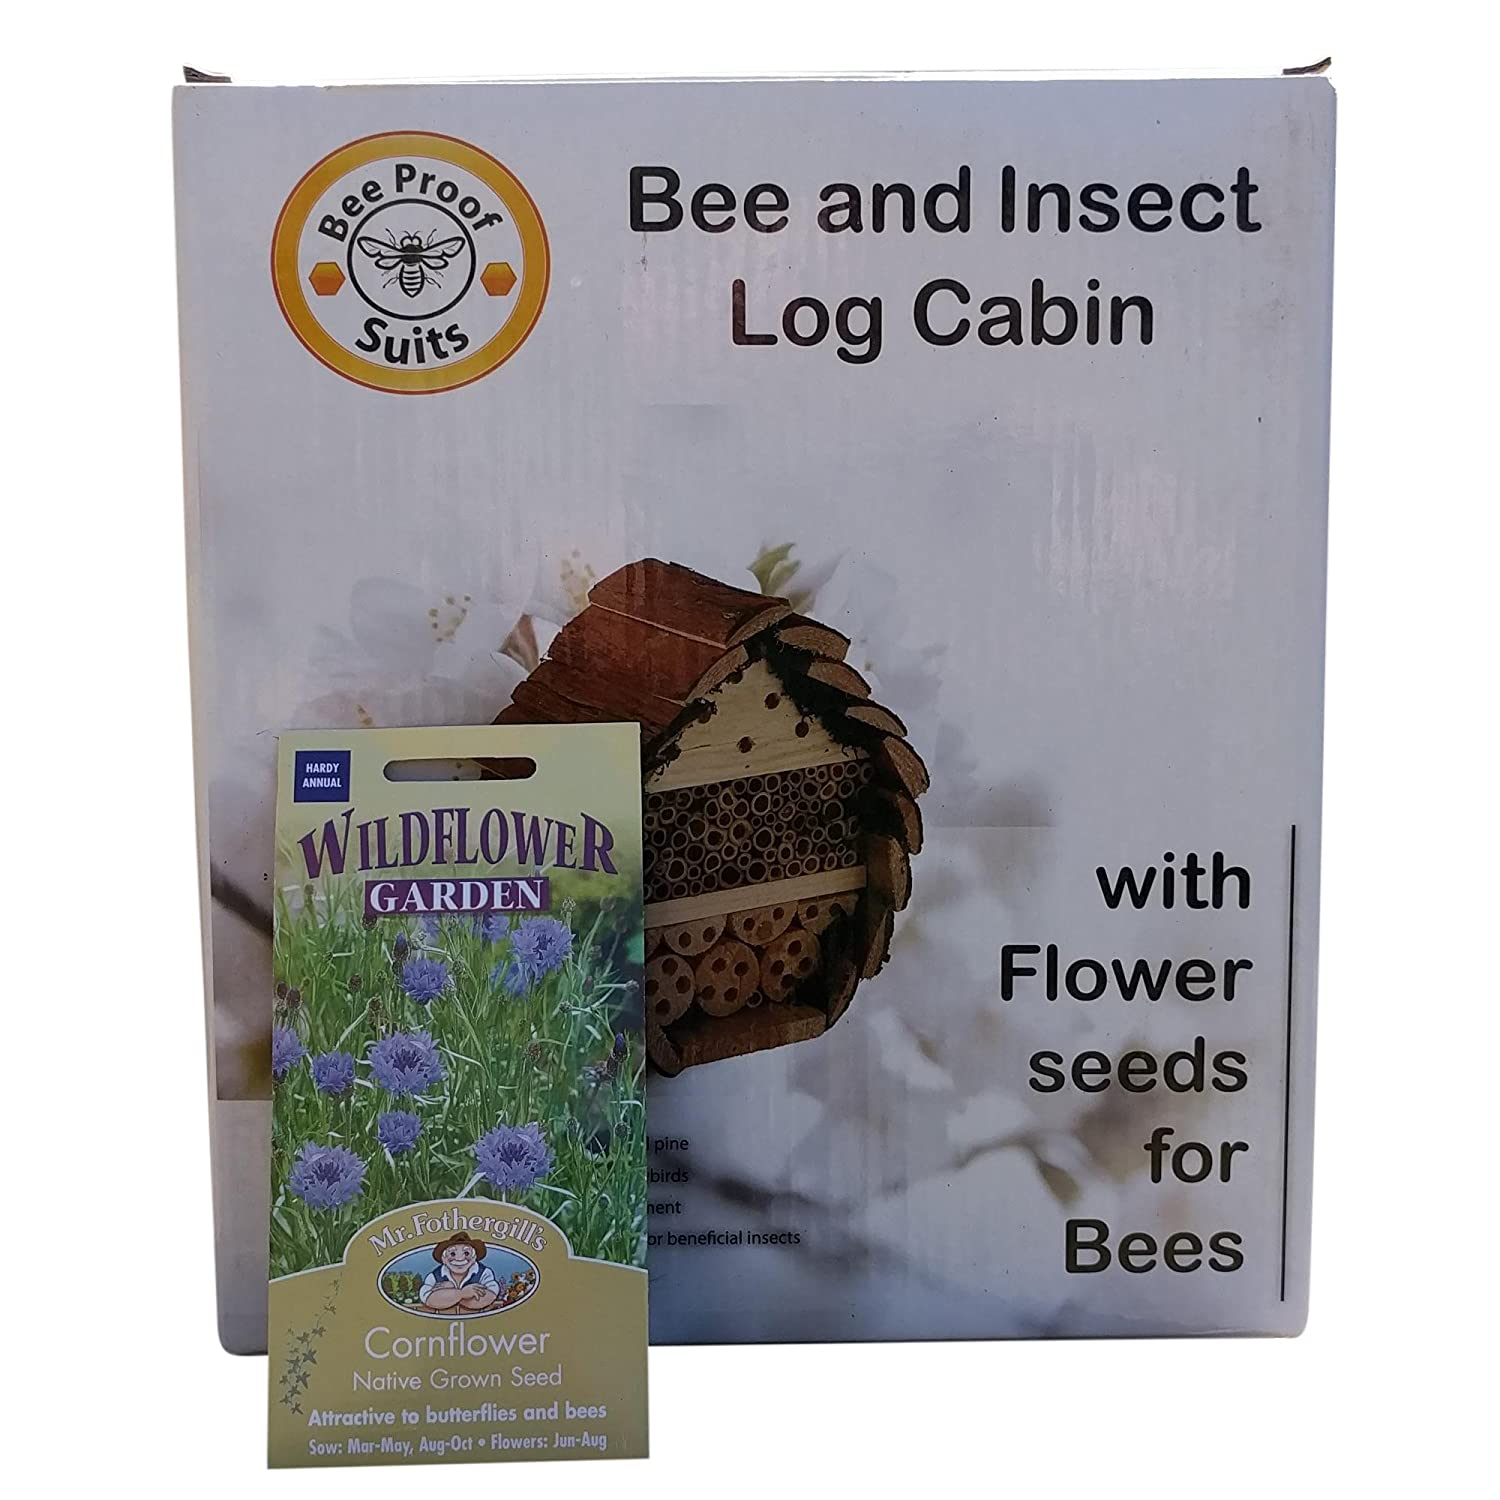 insect log cabin bee and bug home insect hotel with flower seeds for